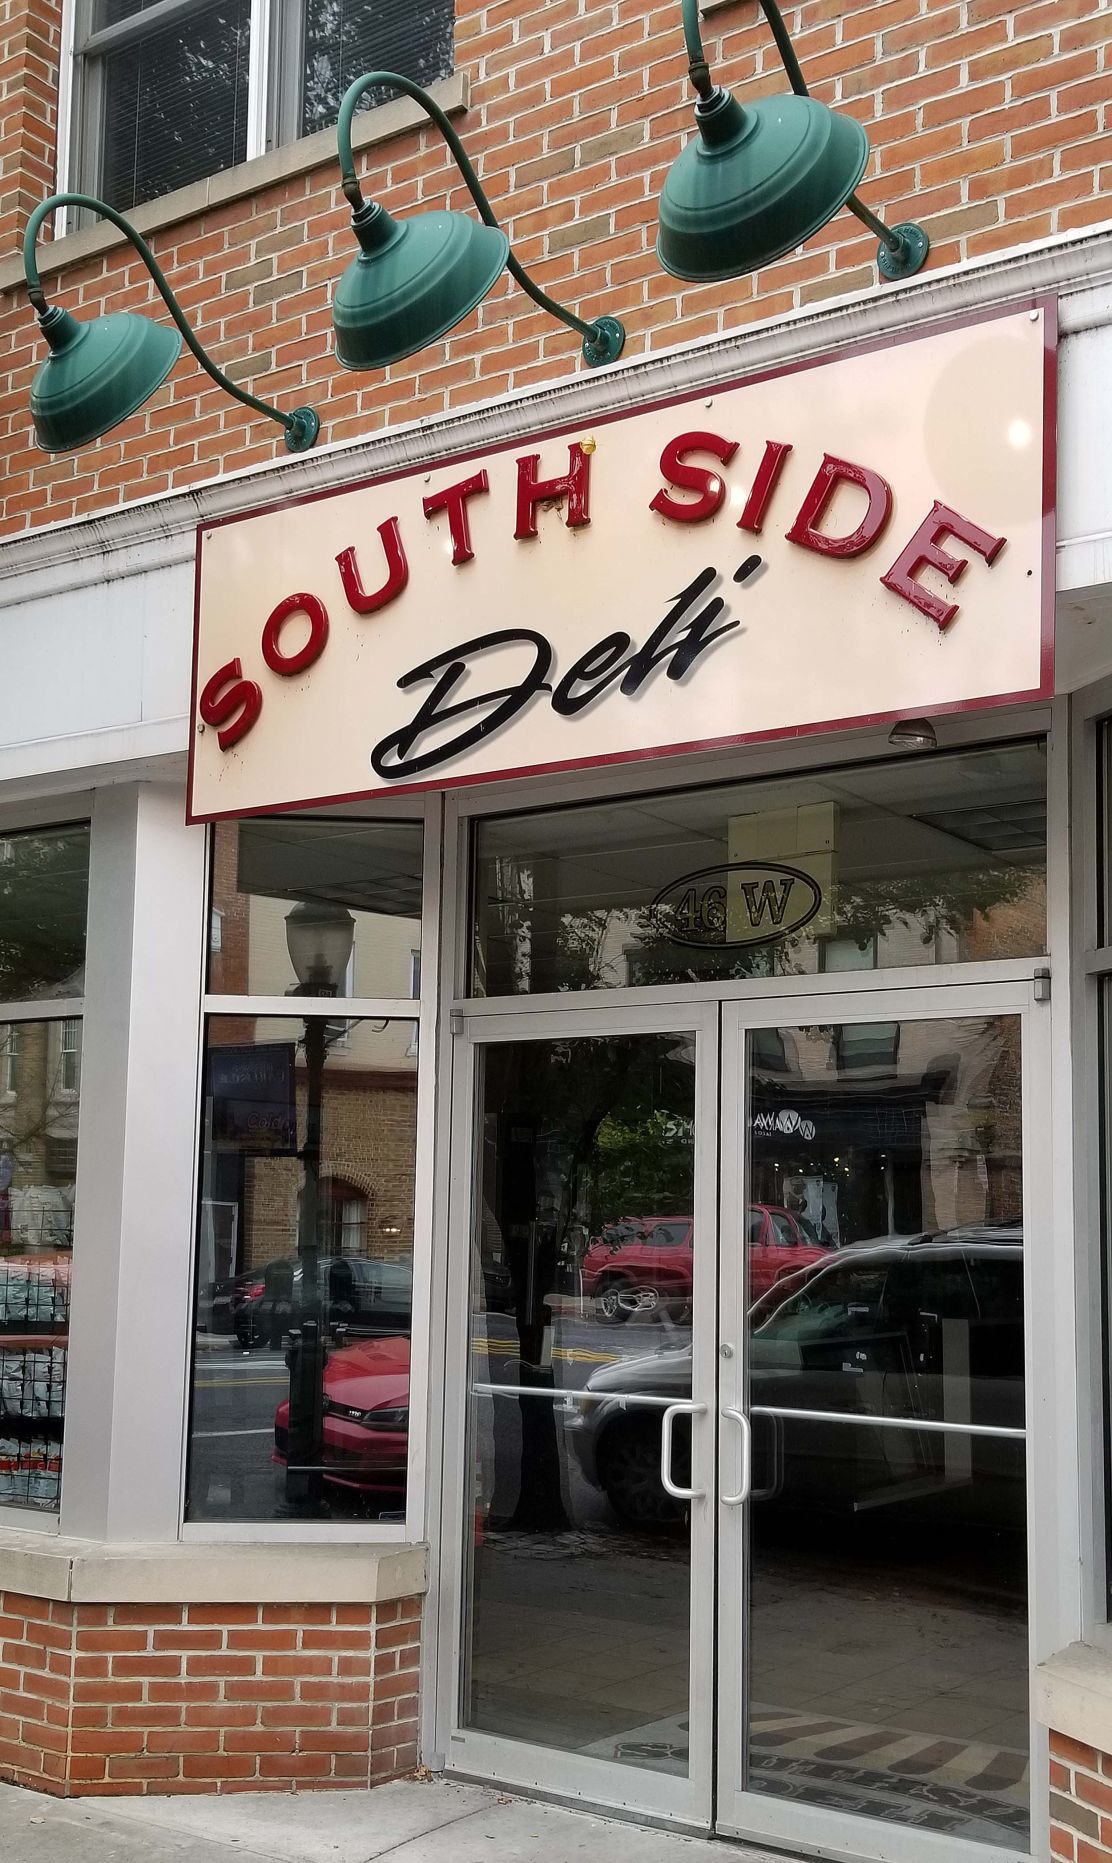 South Side Deli 1.jpg